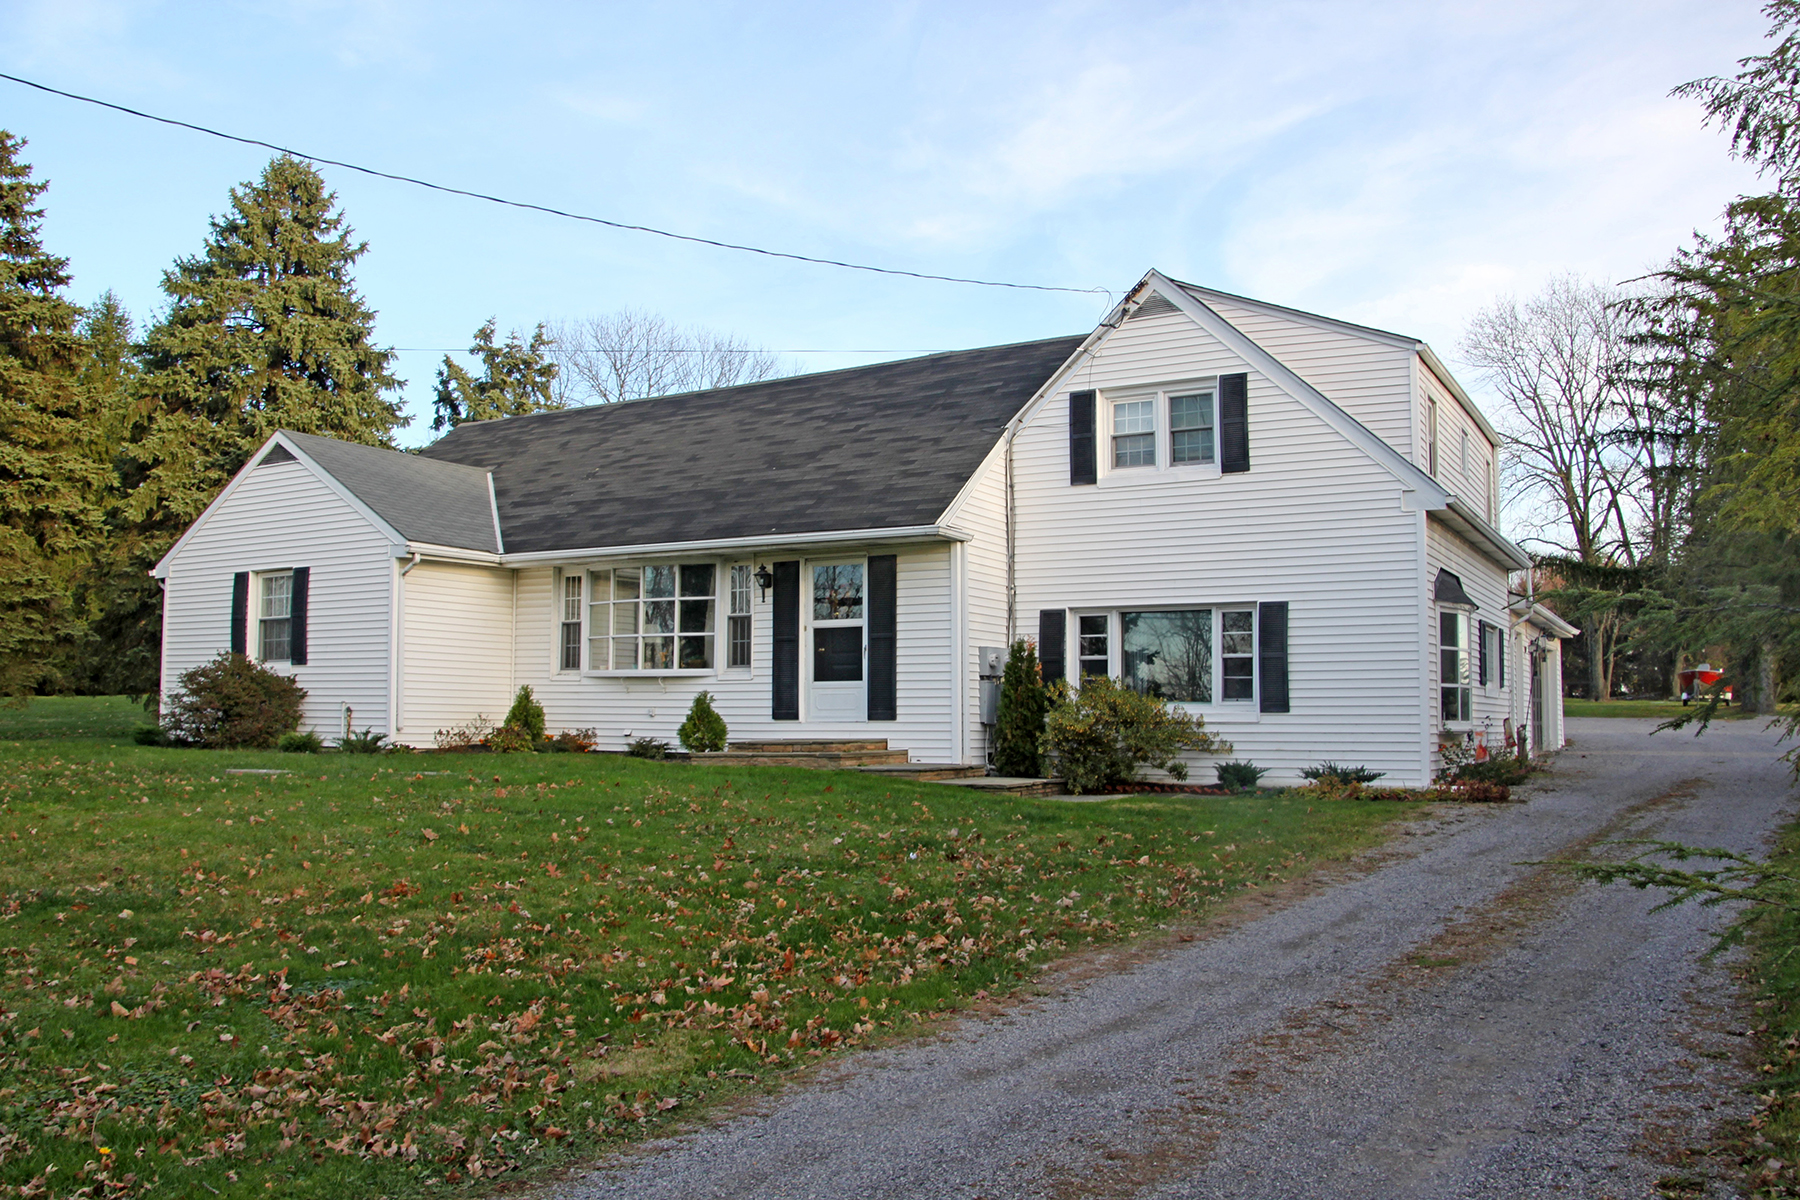 Single Family Home for Sale at Doylestown, PA 5274 Point Pleasant Pike Doylestown, Pennsylvania, 18902 United States